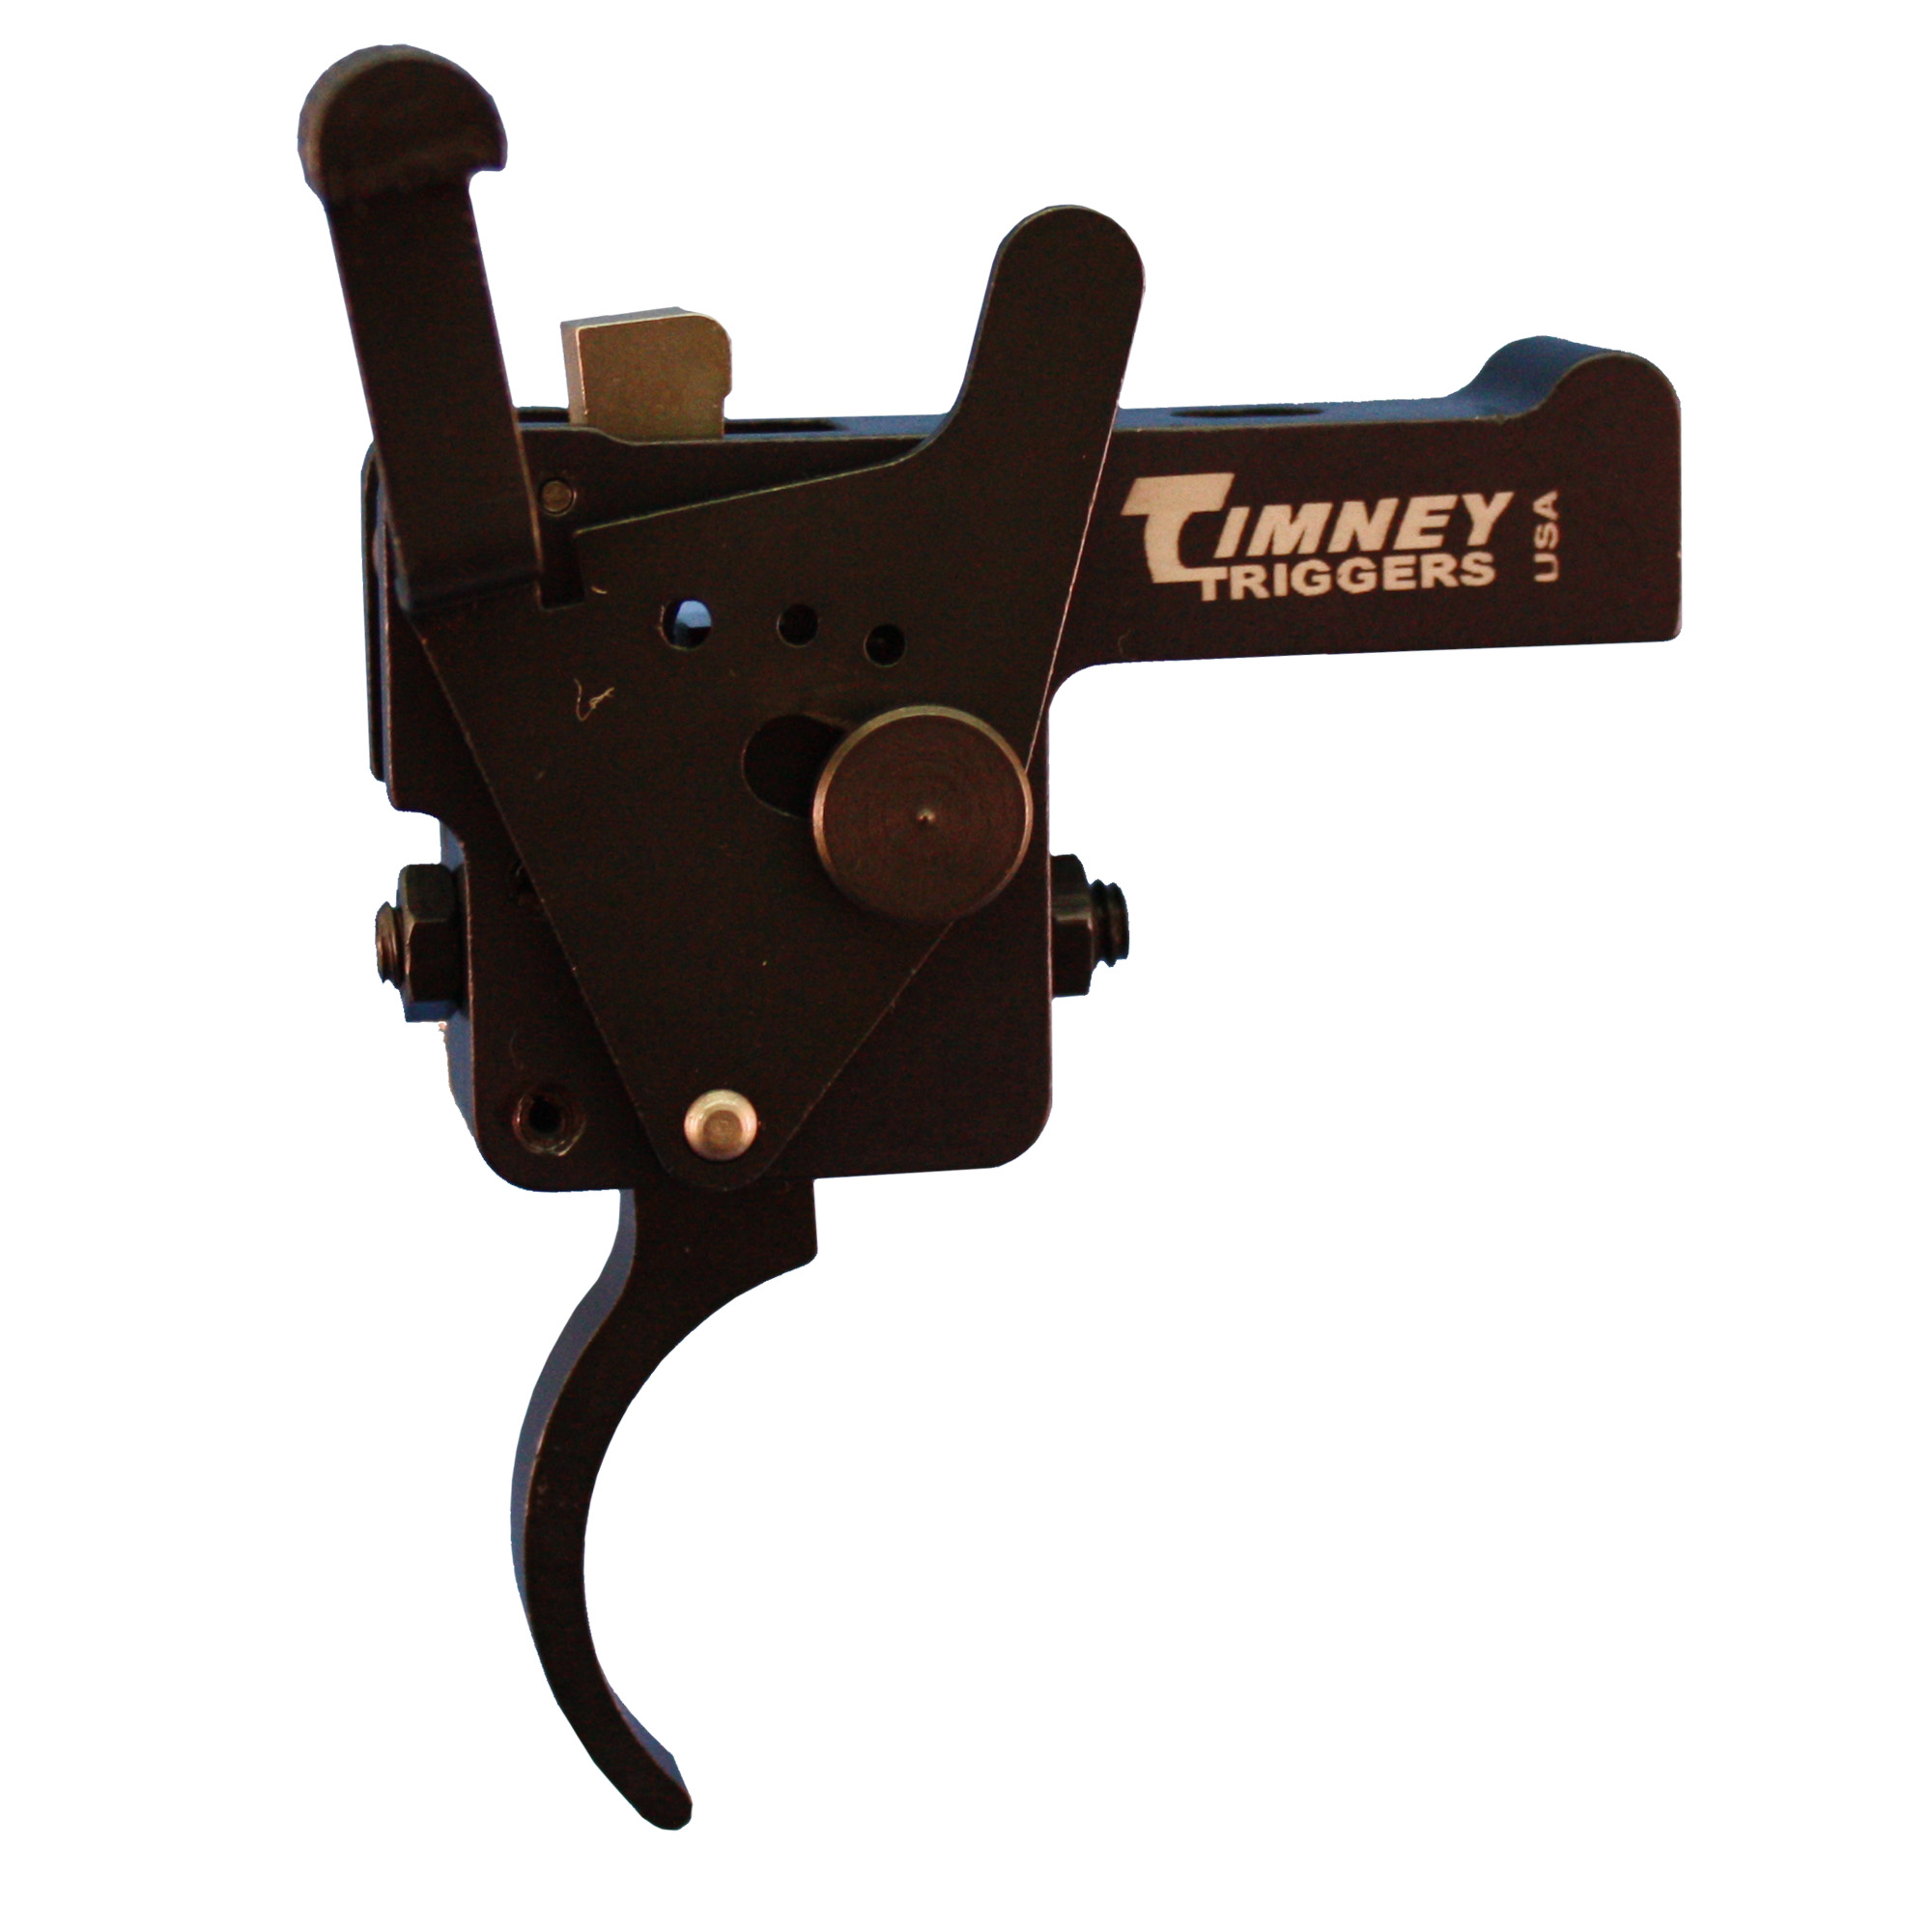 Timney Rifle Trigger for Weatherby Vanguard and Howa 1500 1.5 to 4 LBS of Adjustable Trigger Pull Black